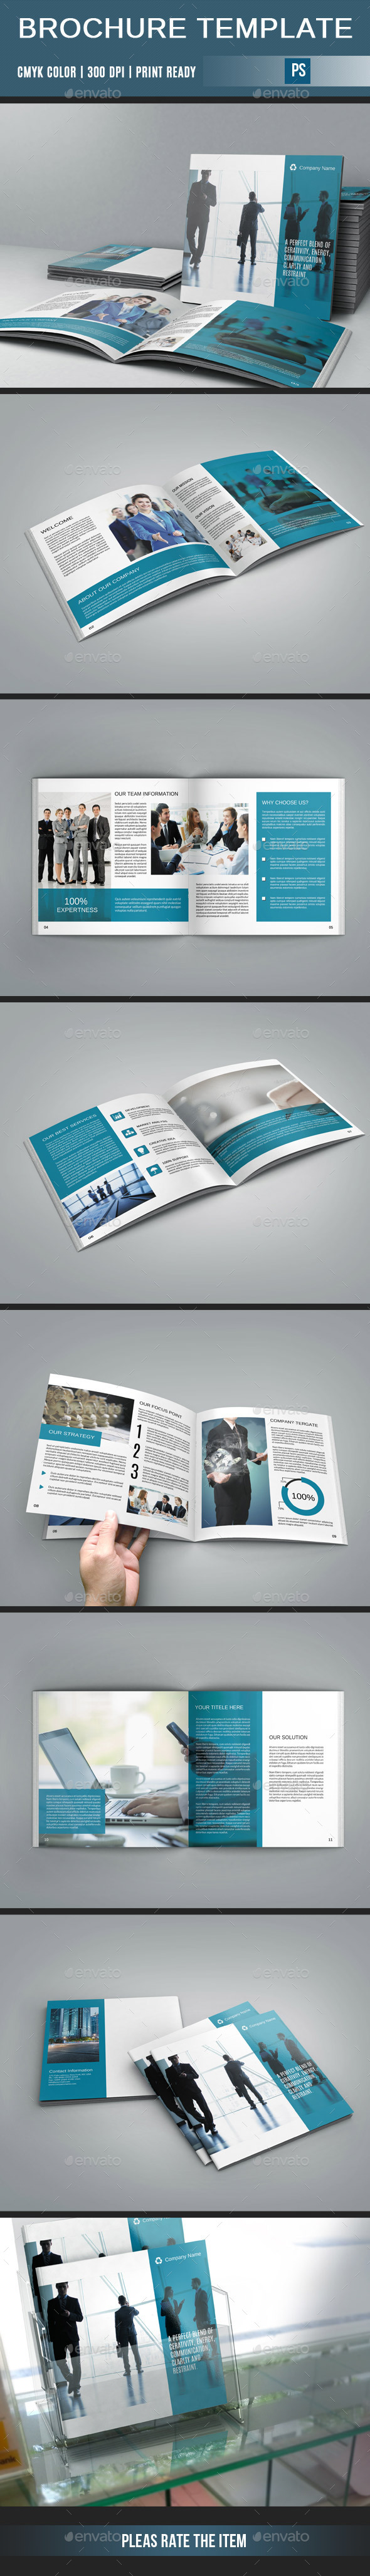 GraphicRiver Corporate Square Brochure-V206 10529129